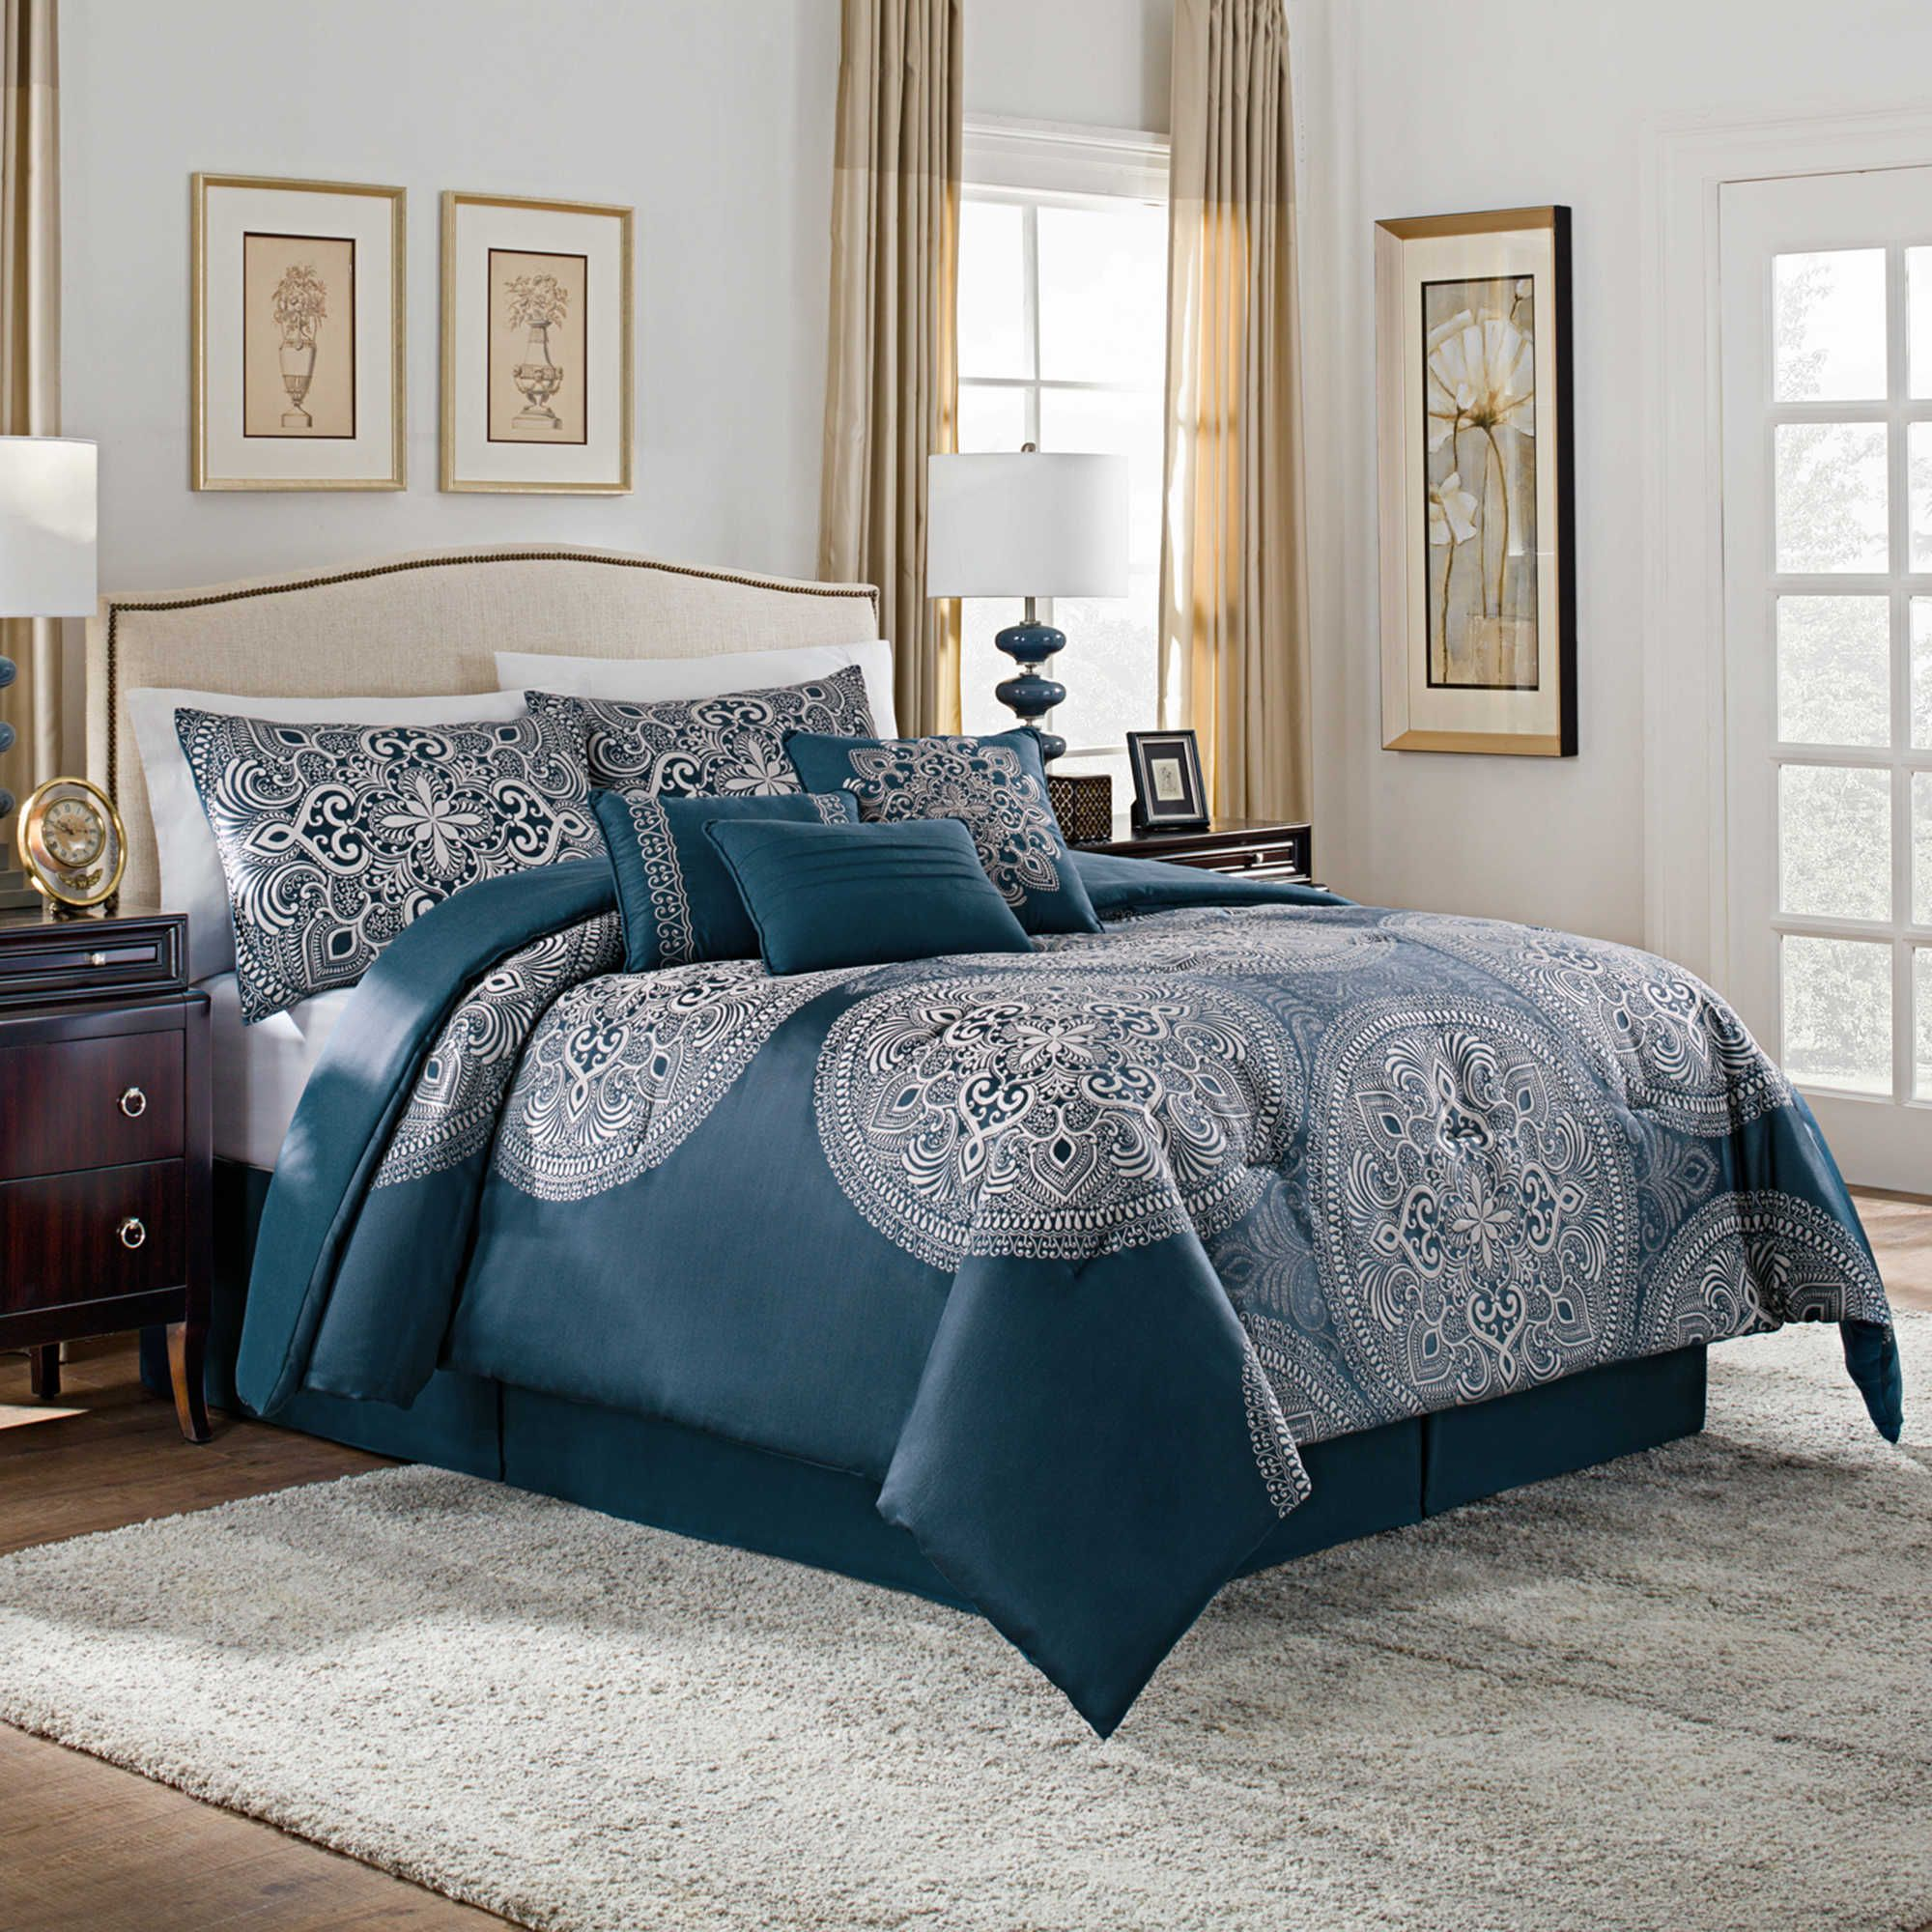 product image for VCNY Imperial Piece Comforter